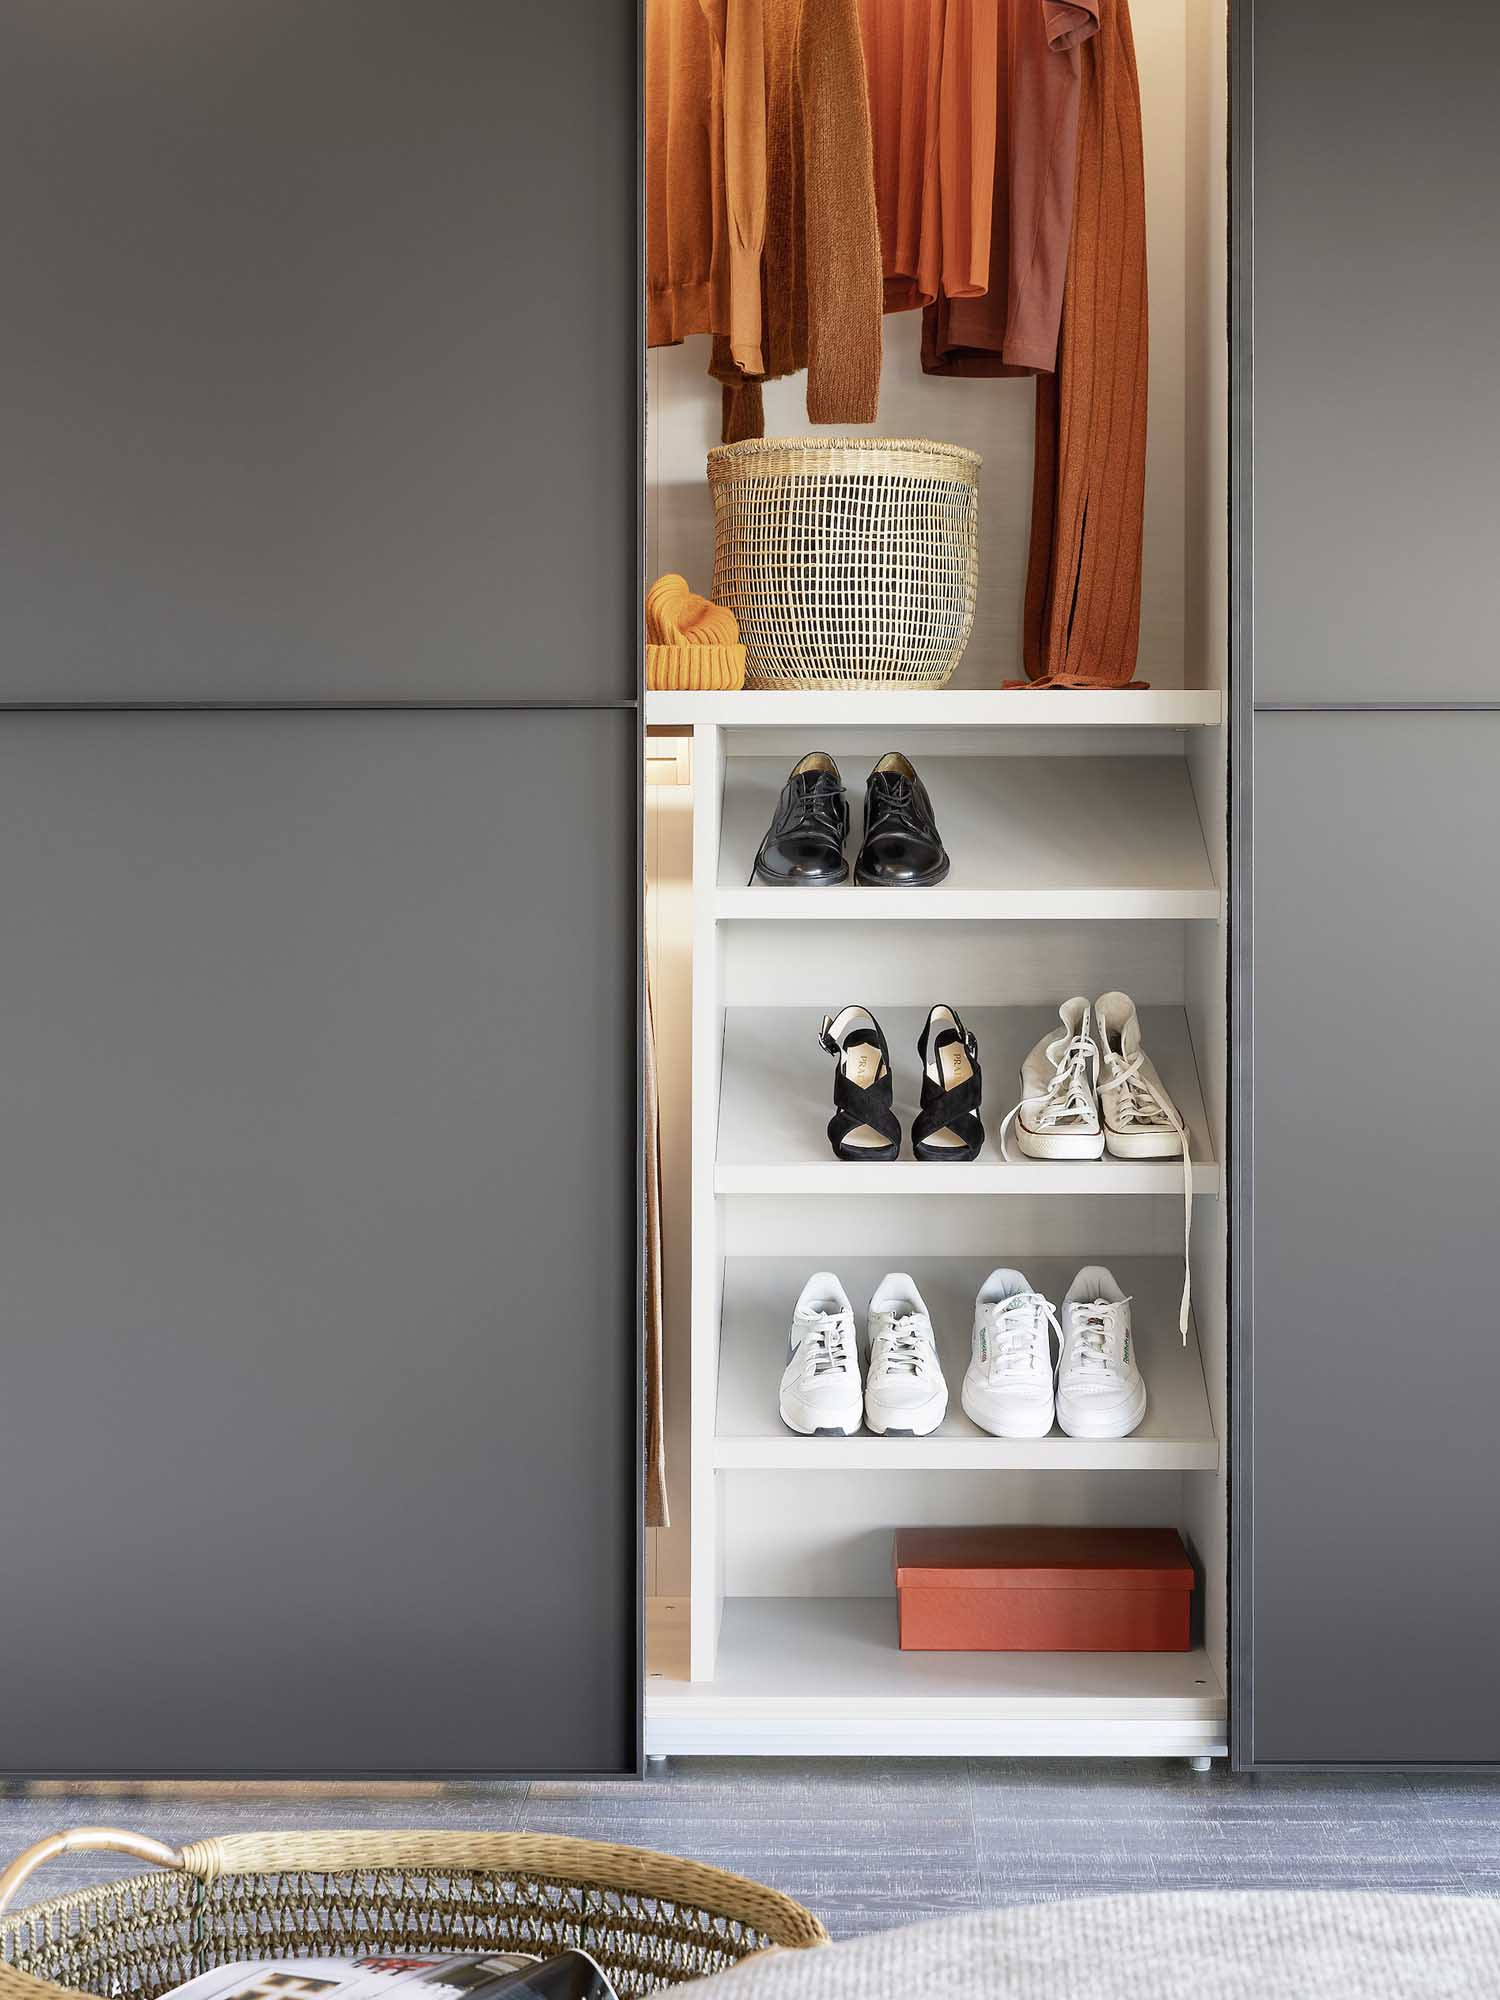 Novamobili Shelving | Hubble Kitchens & Interiors